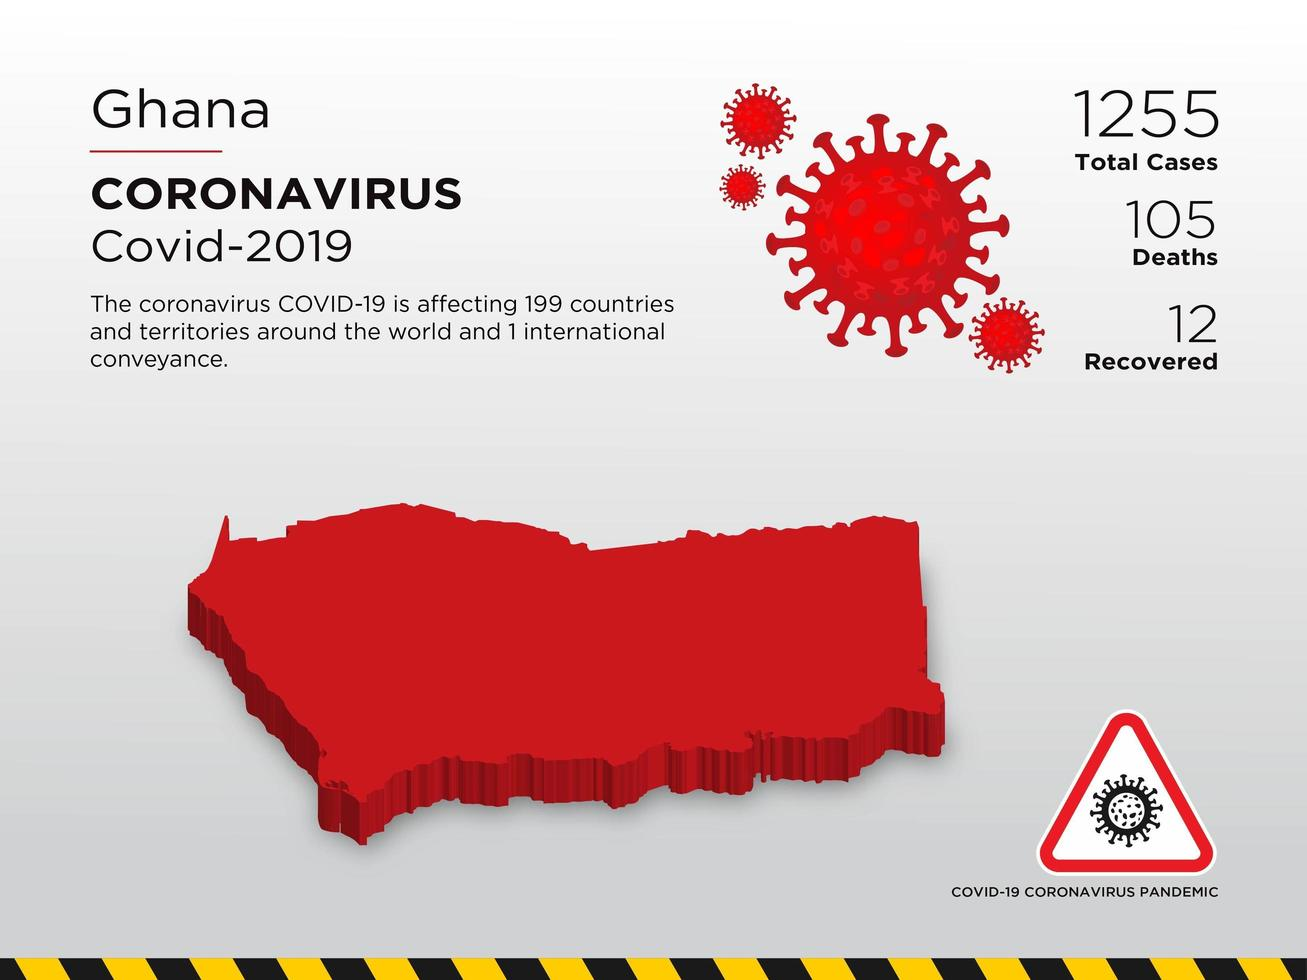 Ghana Affected Country Map of Coronavirus Spread  vector